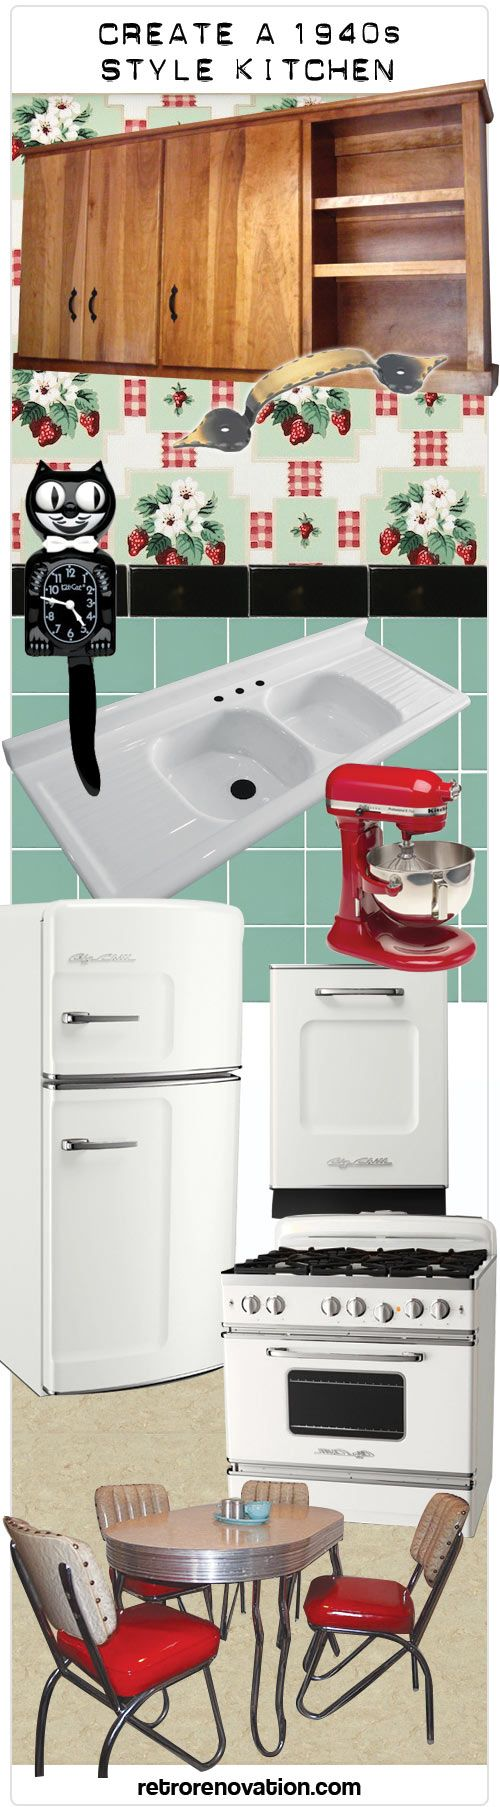 Uncategorized 1940s Kitchen Appliances best 25 1940s kitchen ideas on pinterest house vintage decor